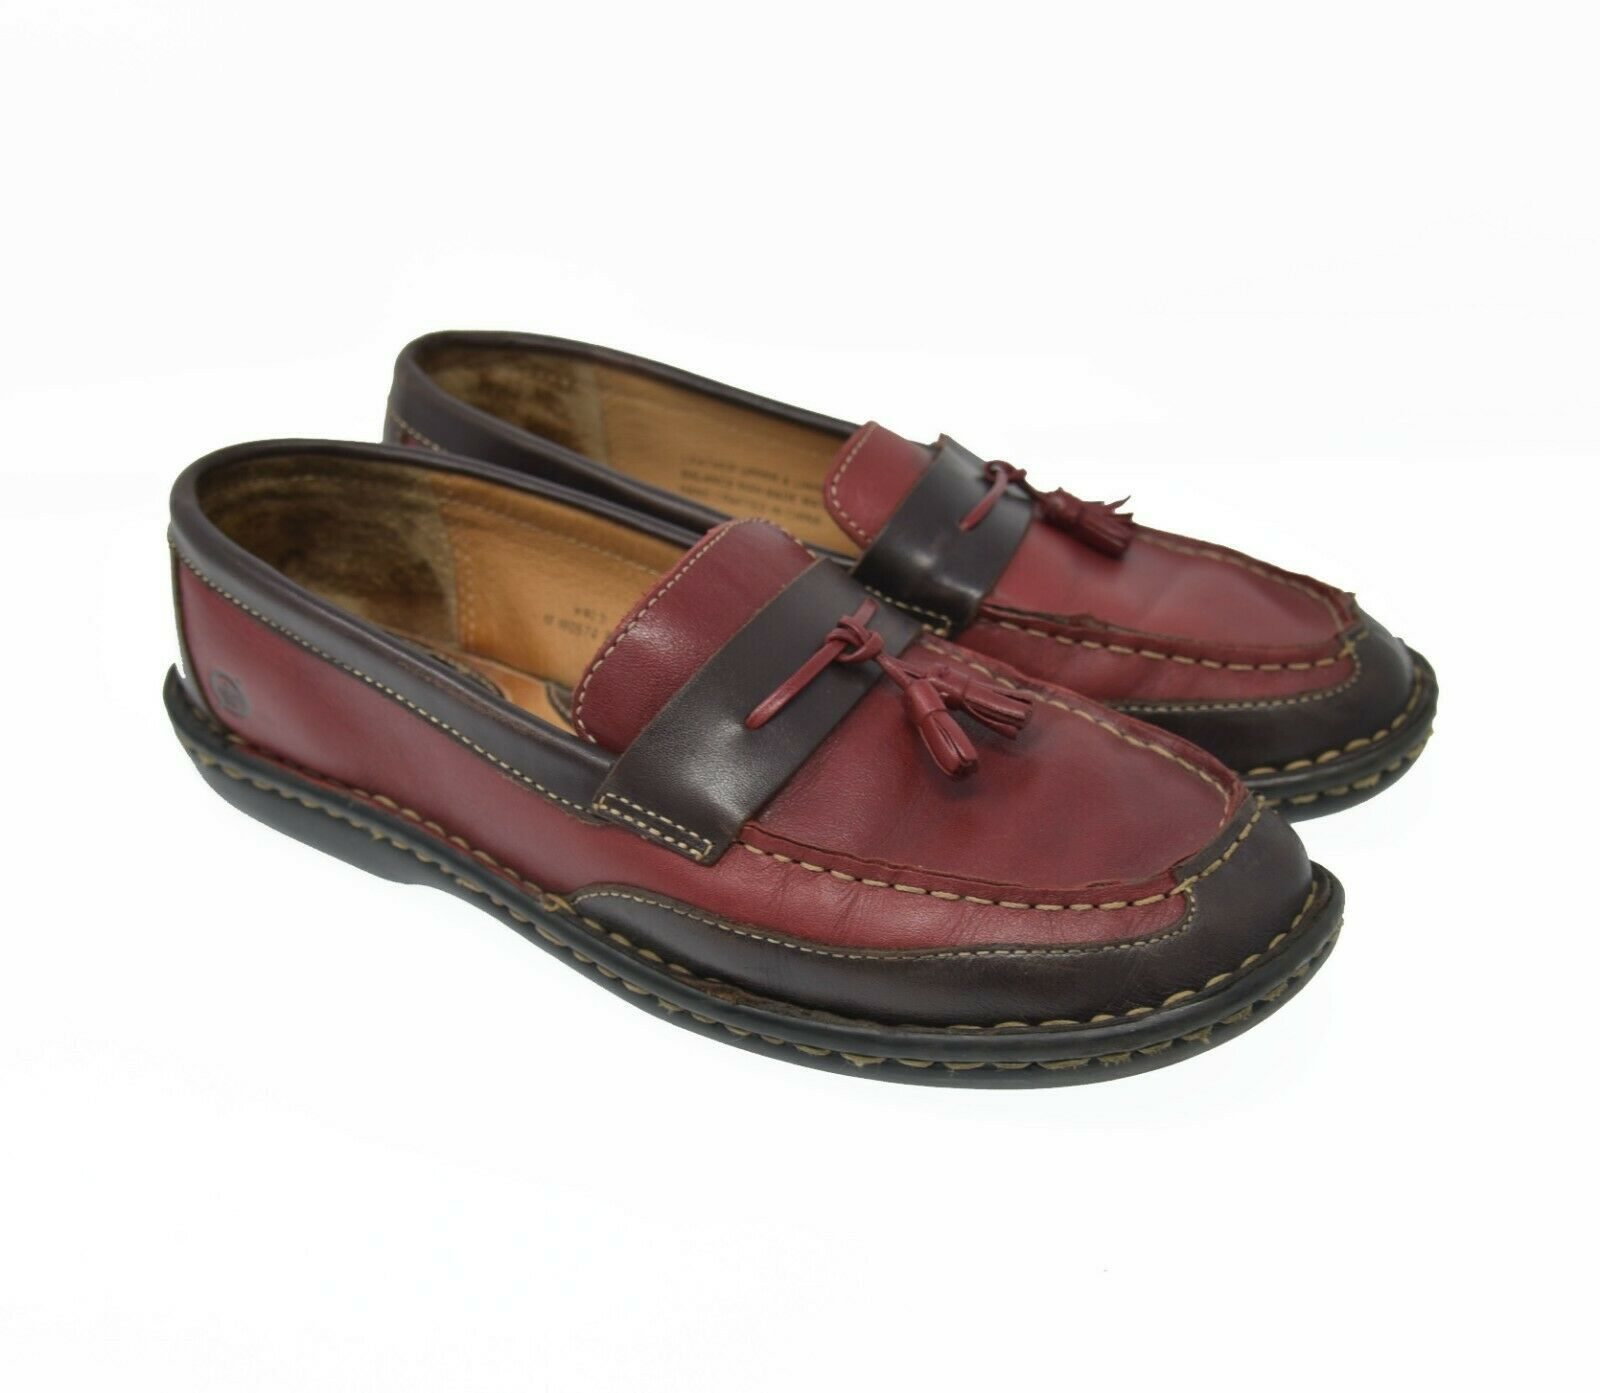 Born Women's Sz 9 EU 40.5 Red Brown Leather Slip On Tassel Loafer Comfort Flats